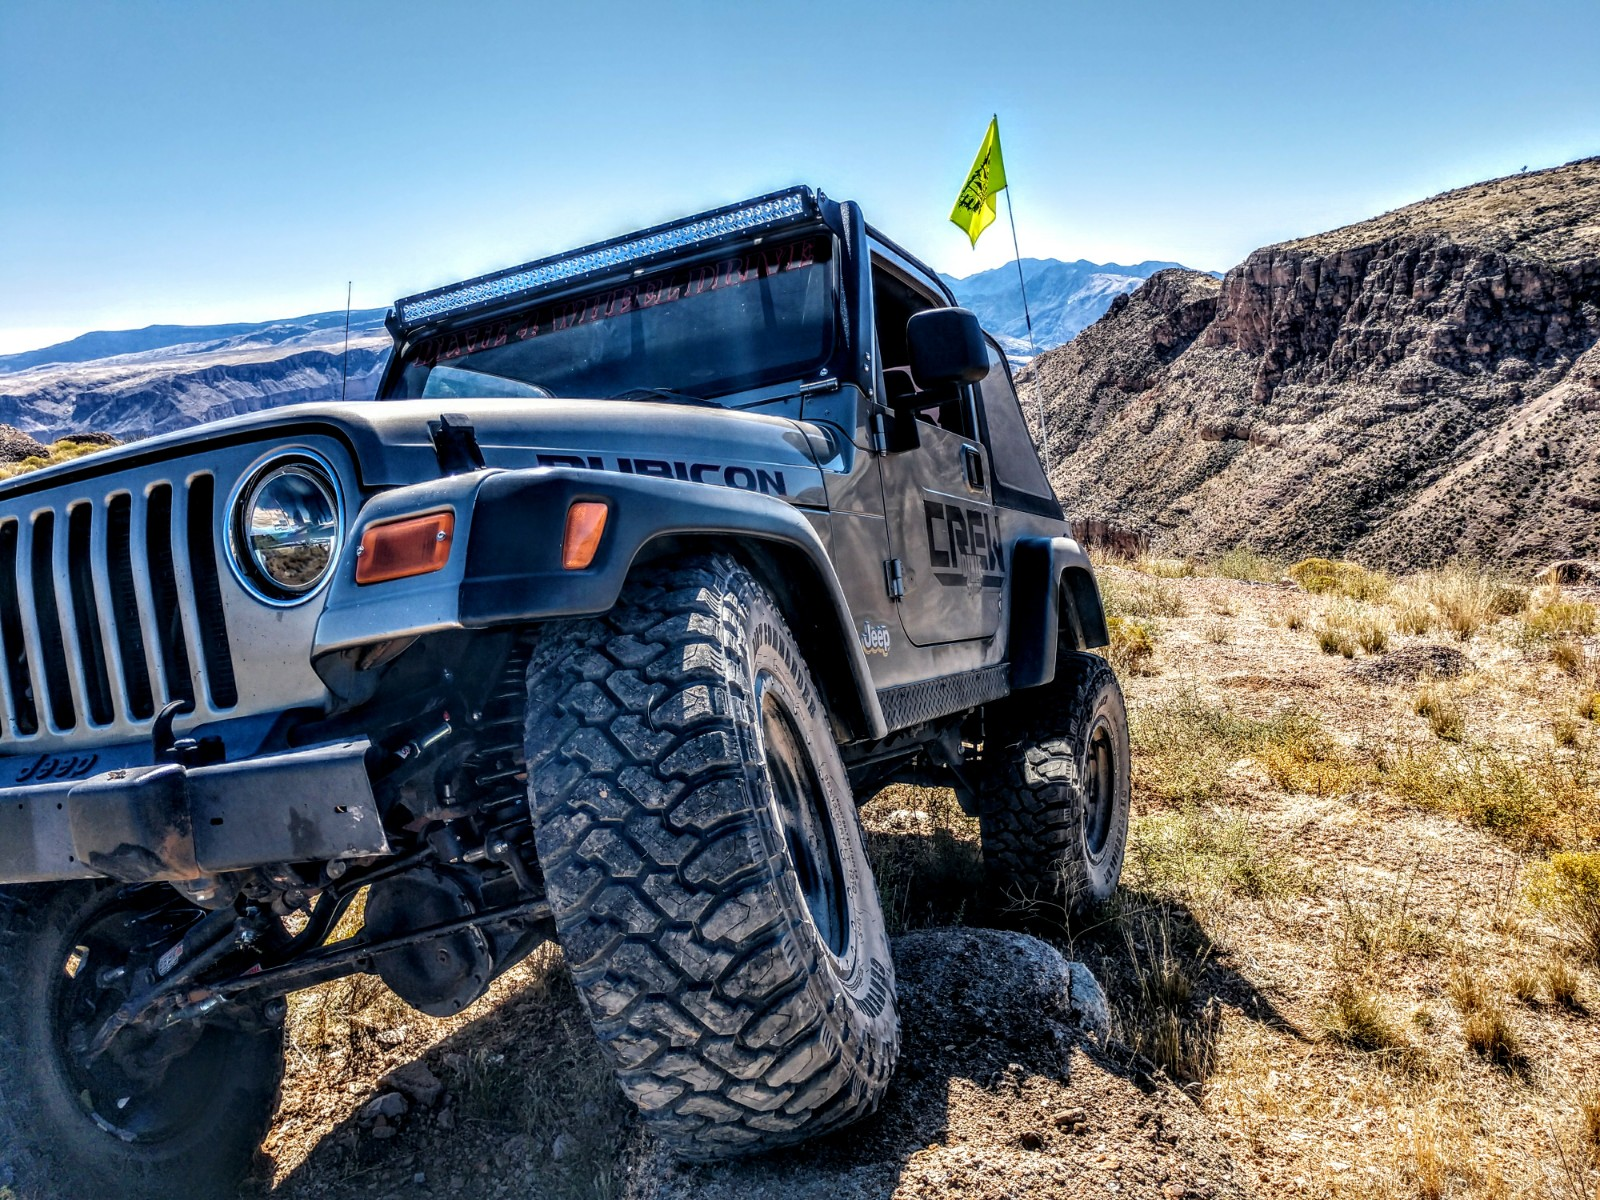 jeep project Find jeep project in canada | visit kijiji classifieds to buy, sell, or trade almost anything new and used items, cars, real estate, jobs, services, vacation rentals and more virtually anywhere in alberta.